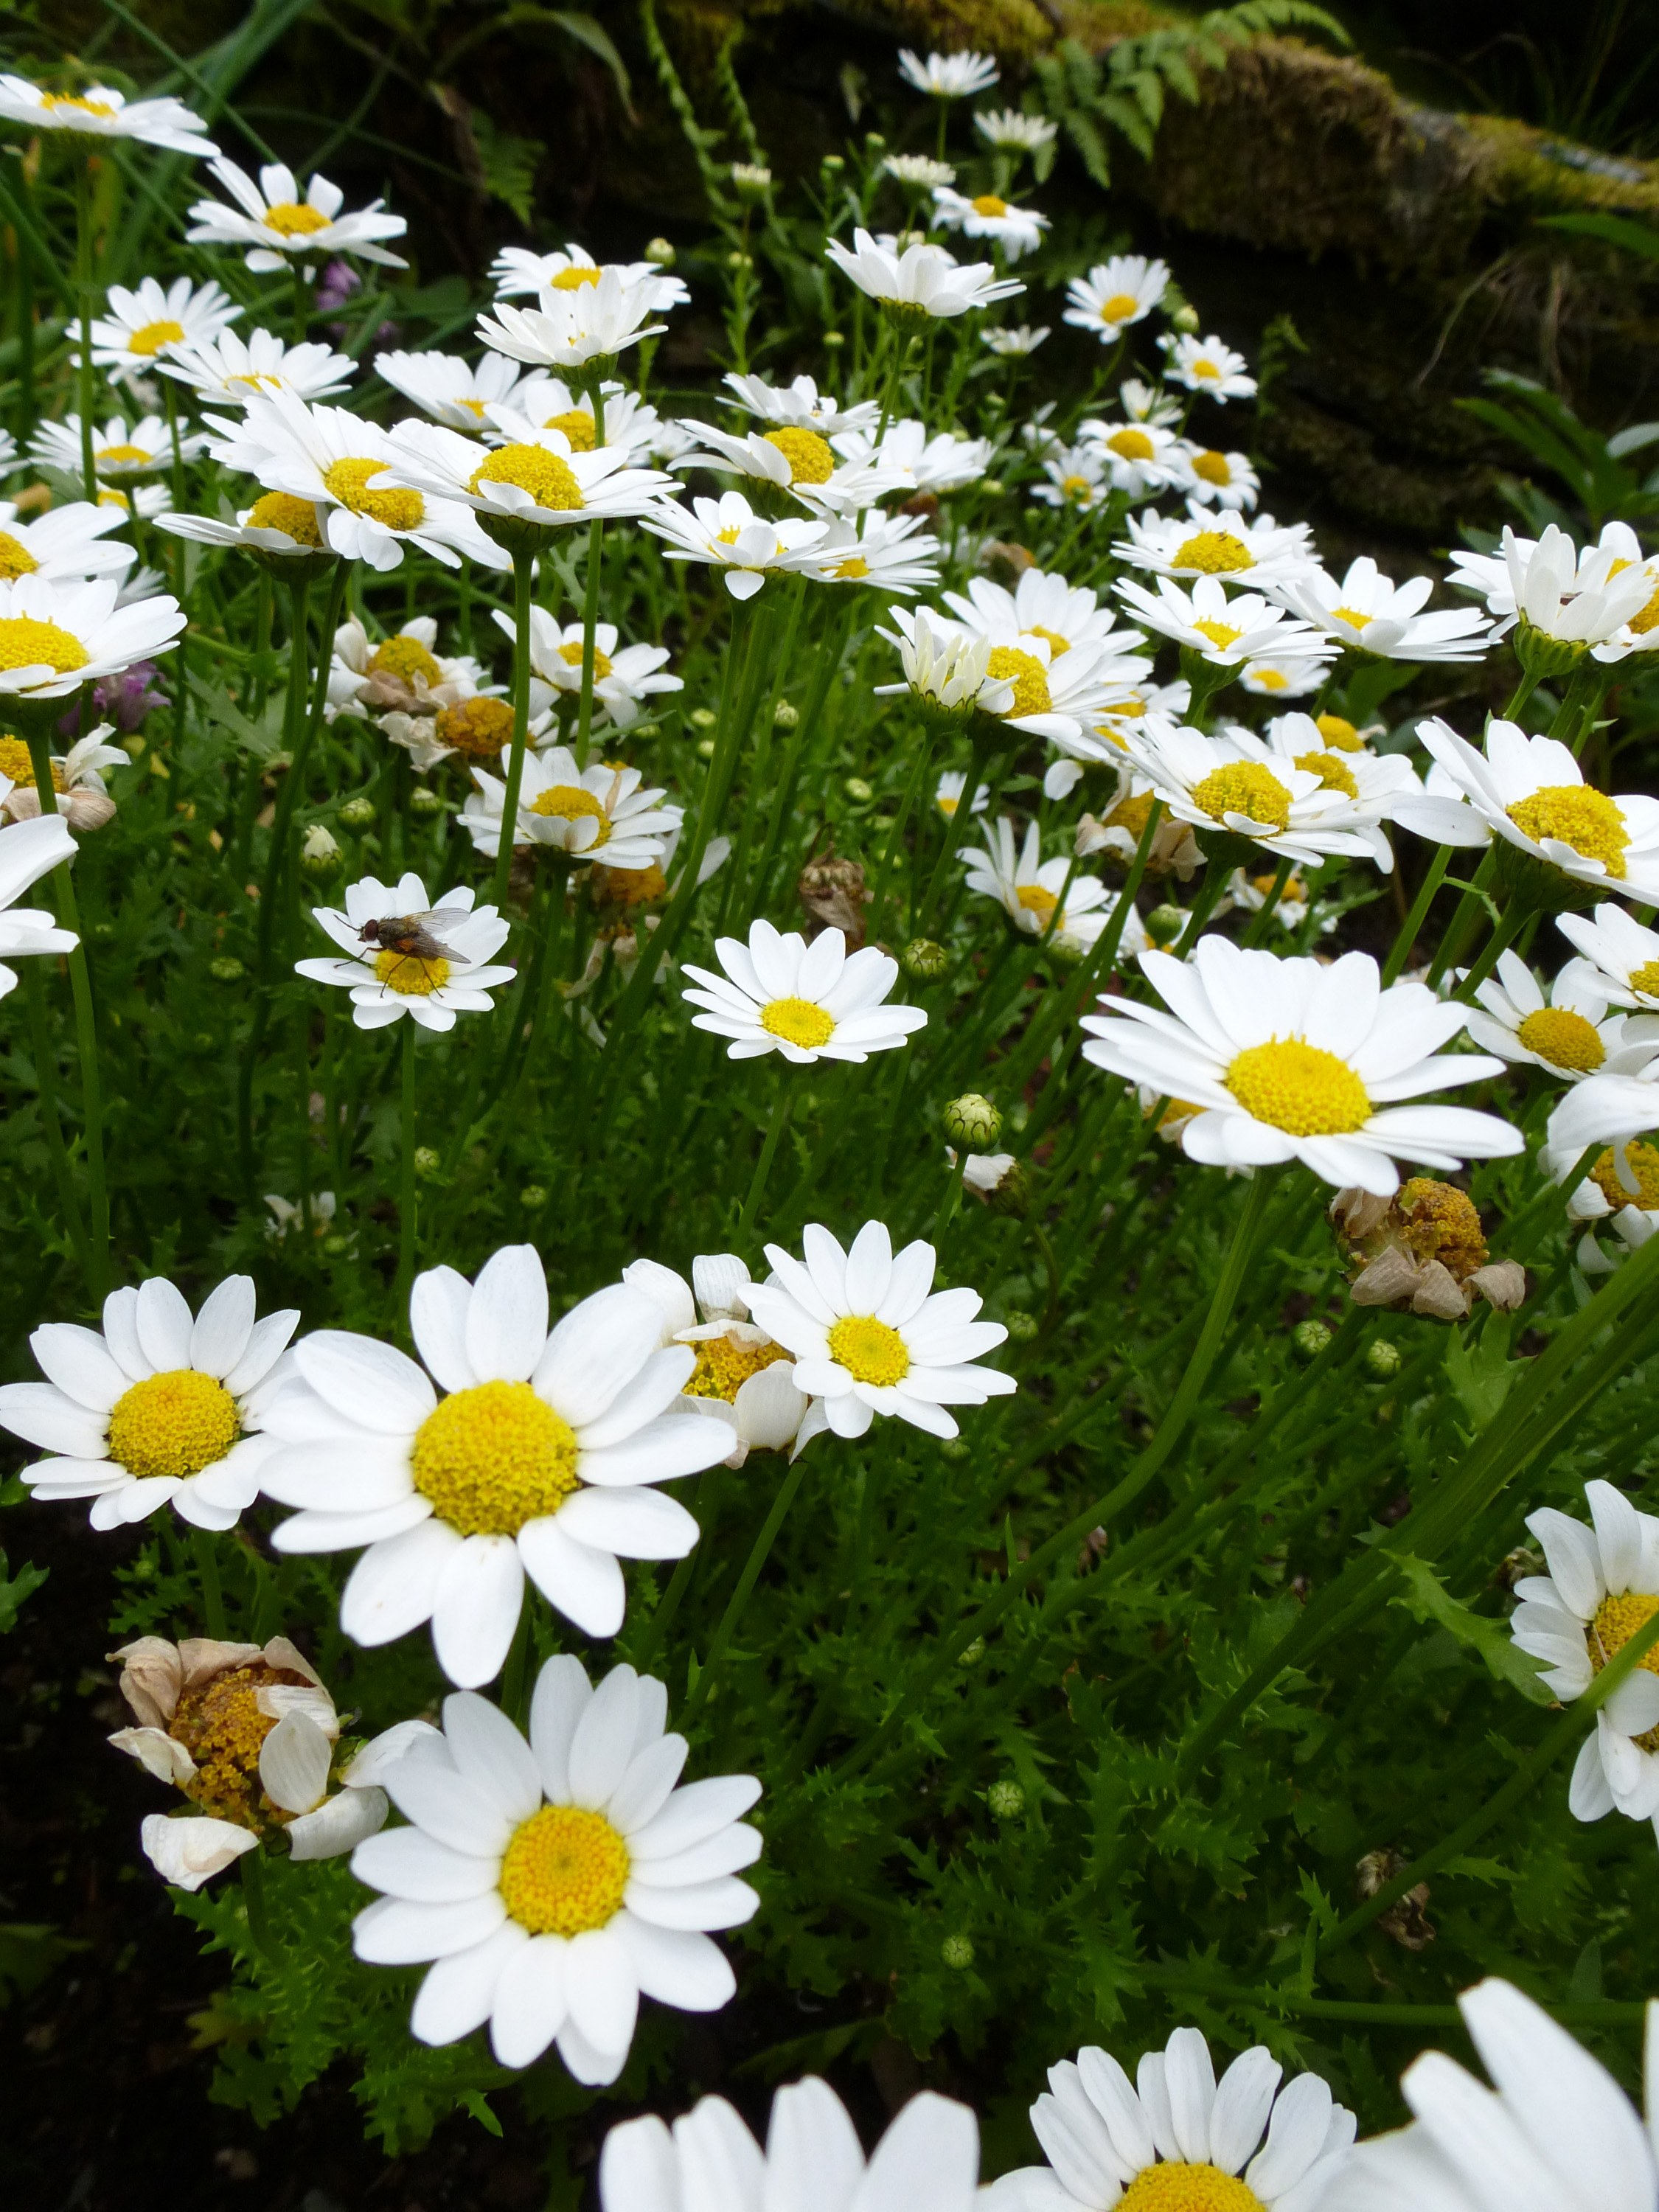 field_daisys.jpg - Close up of white daisy flowers in green field background